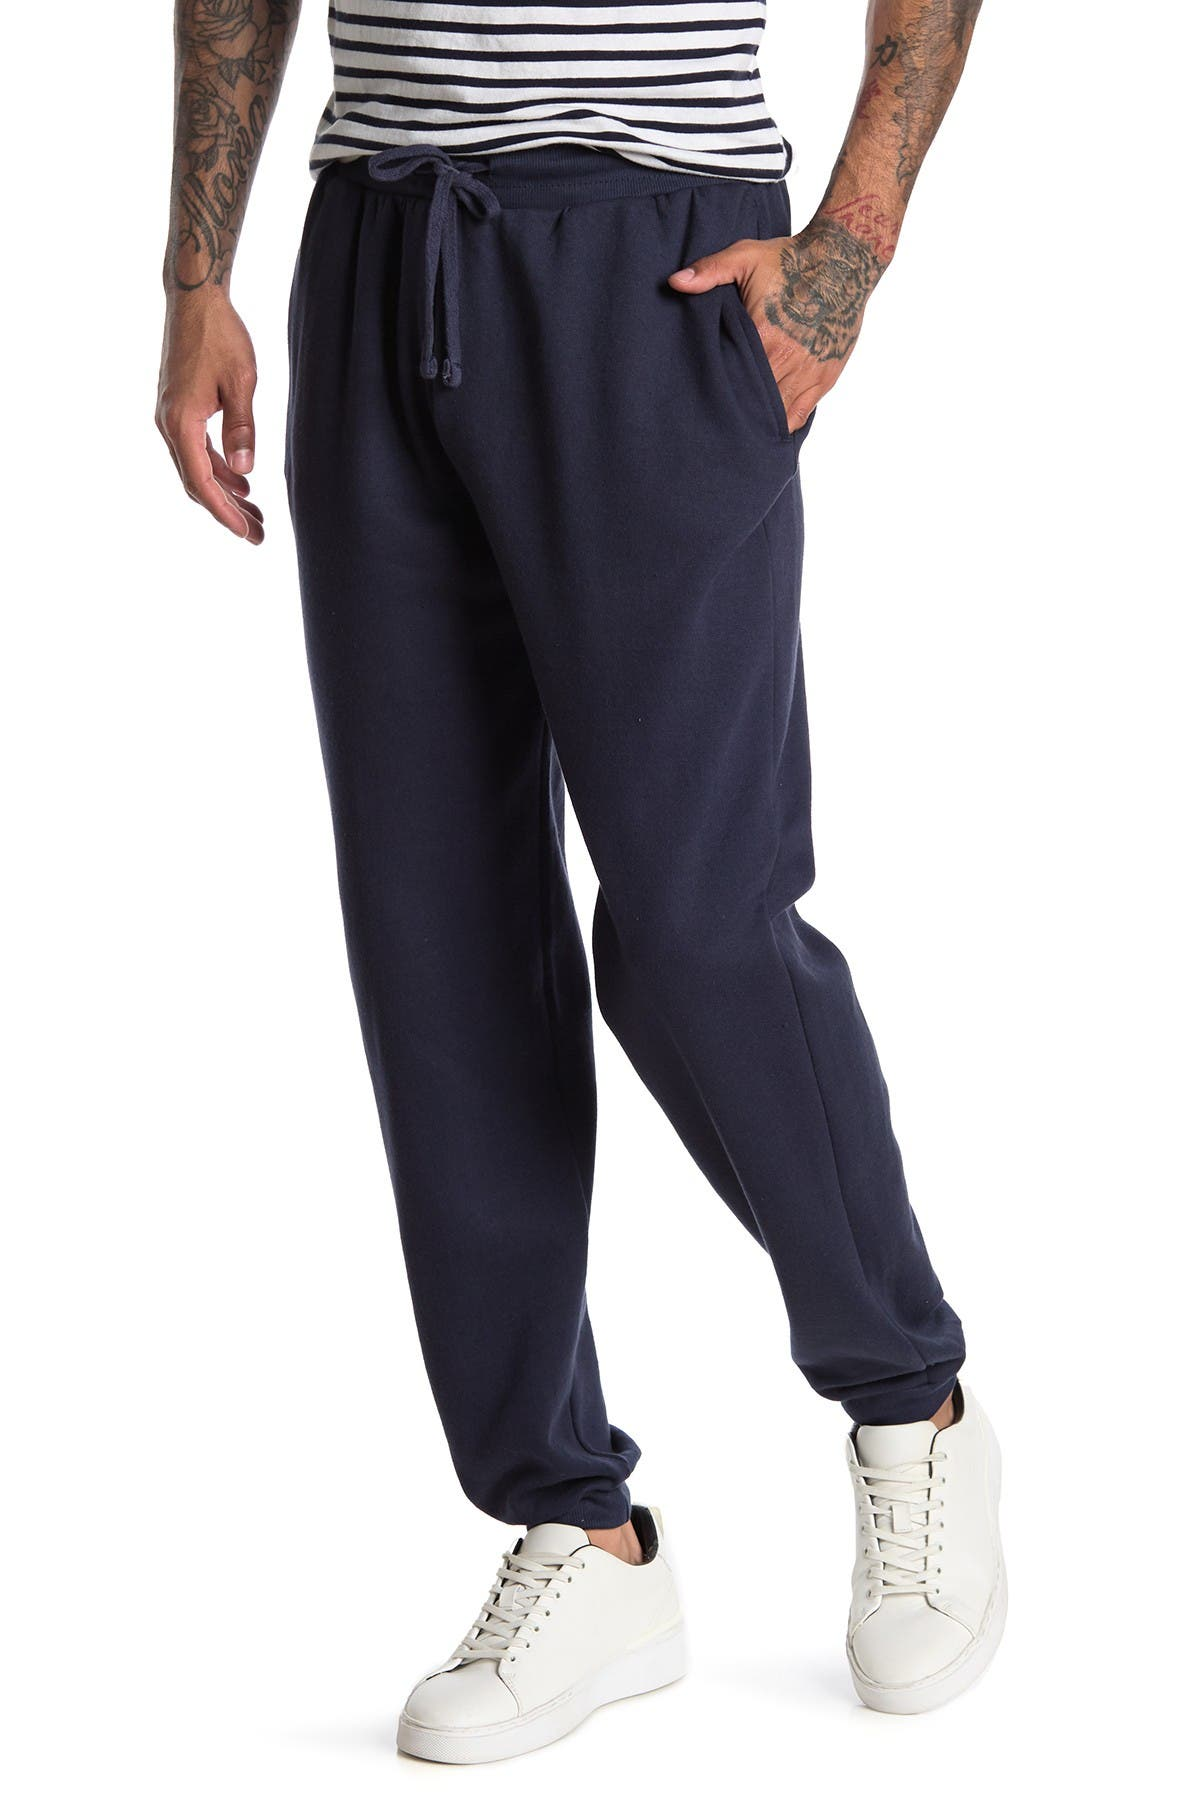 Image of Trunks Surf and Swim CO. Fleece Knit Joggers